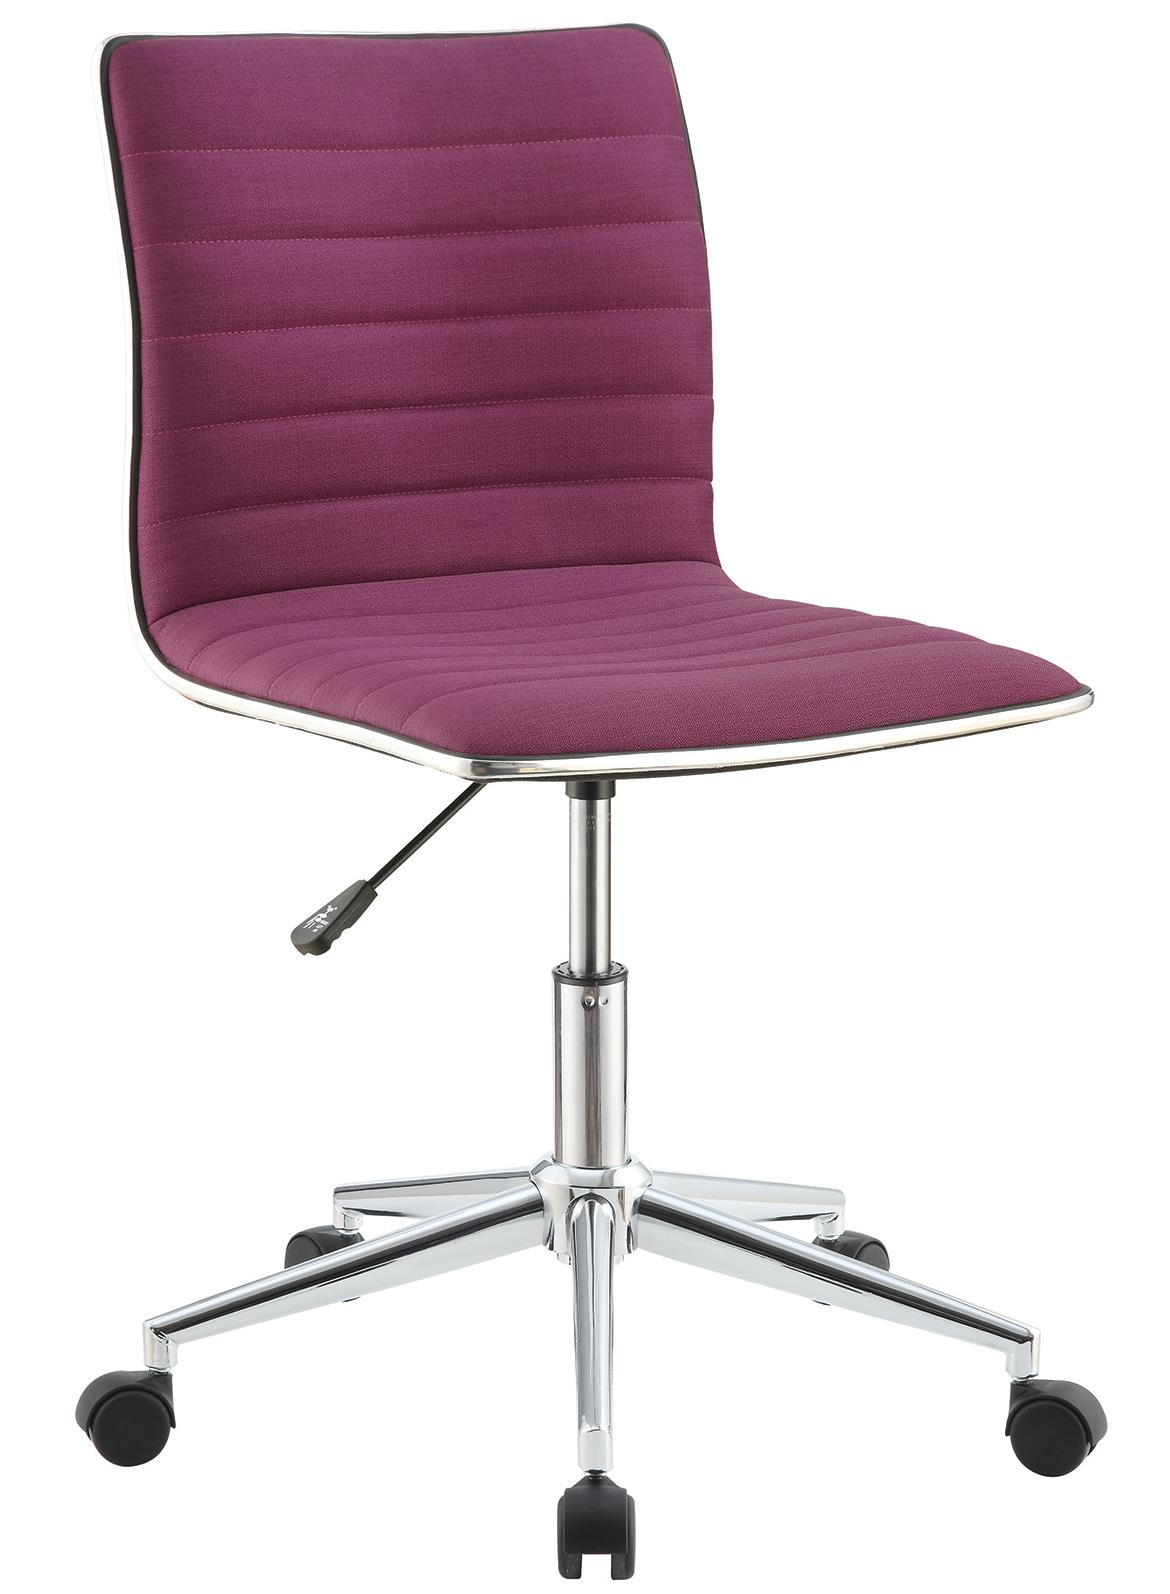 Coaster Office Chairs Office Chair - Item Number: 800728